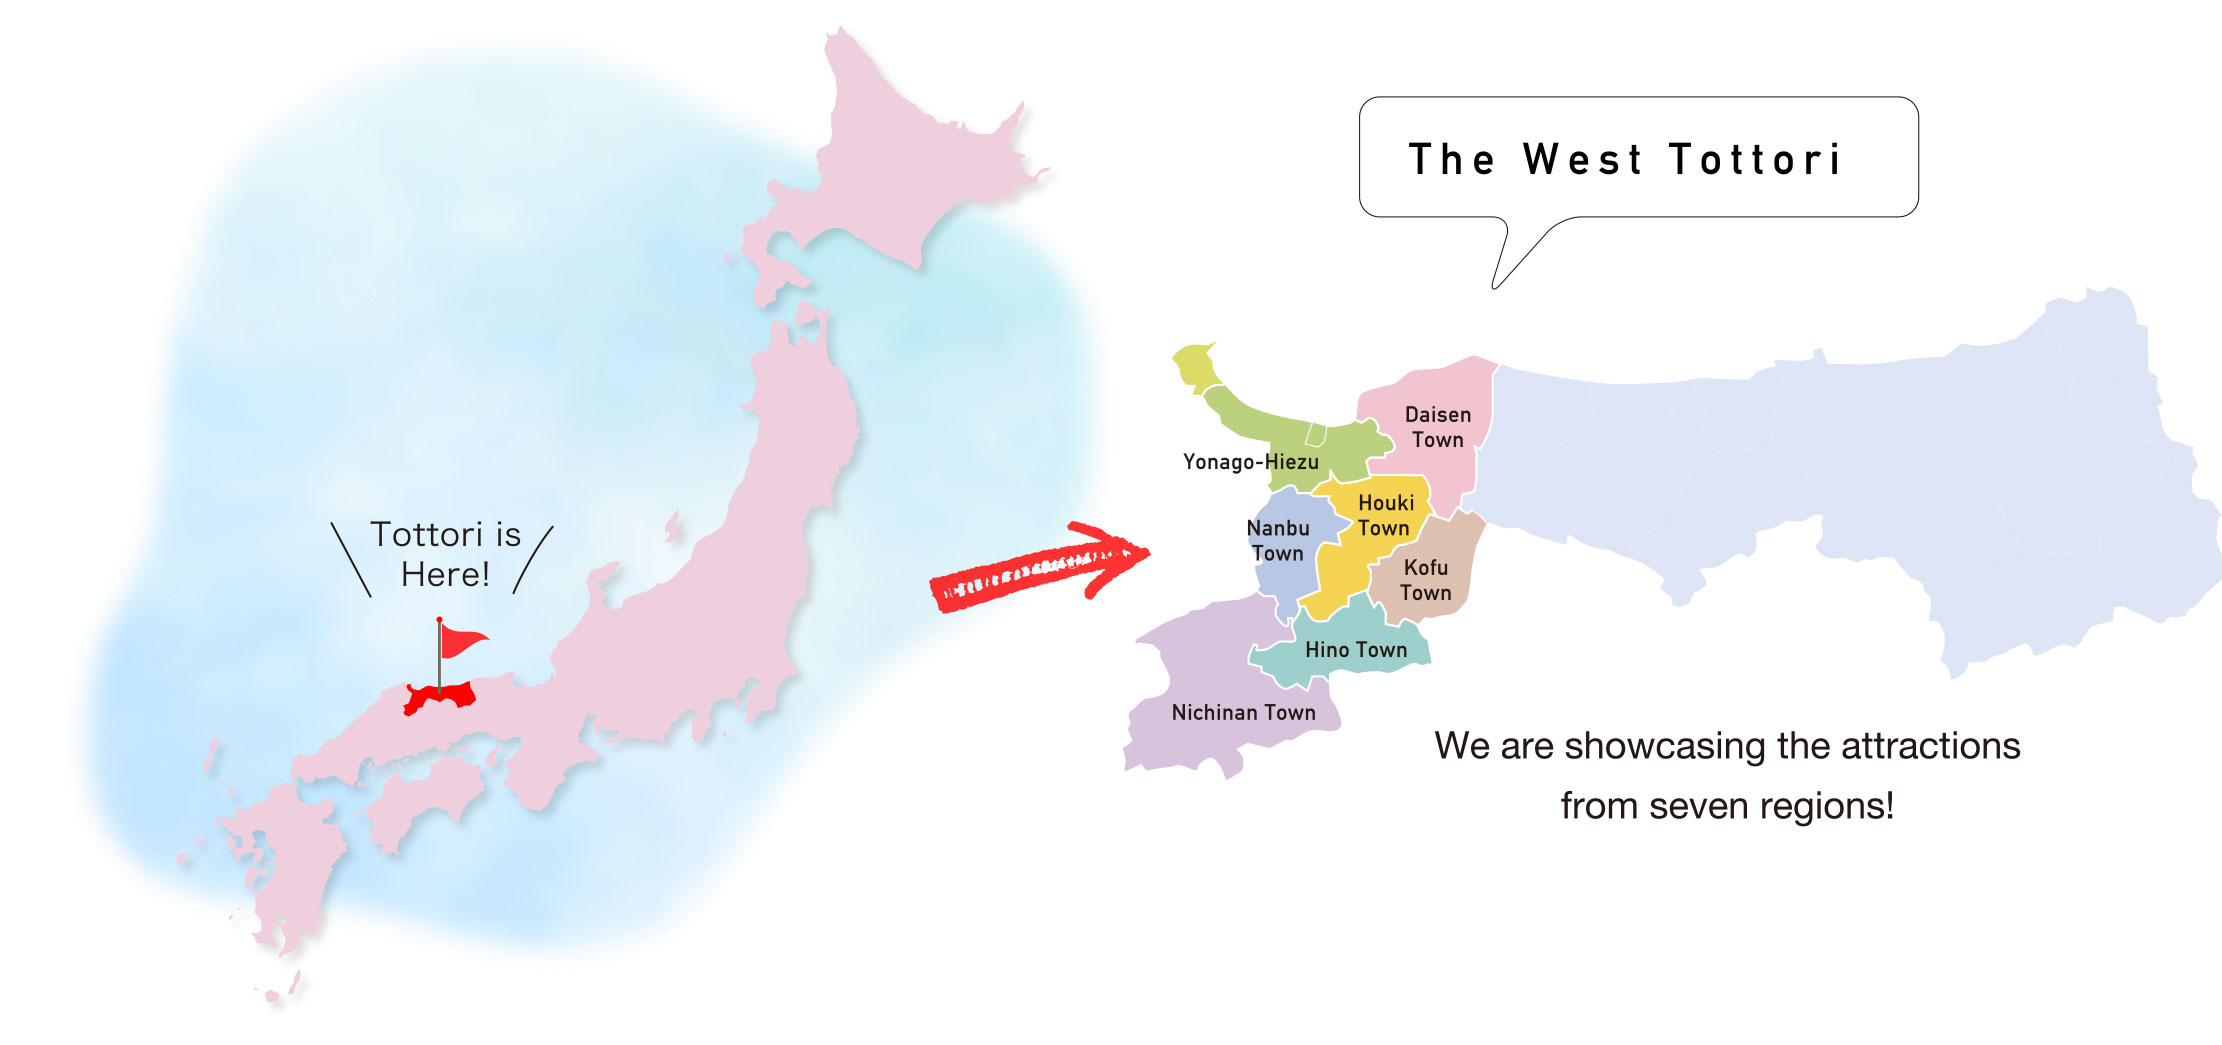 WEST TOTTORI